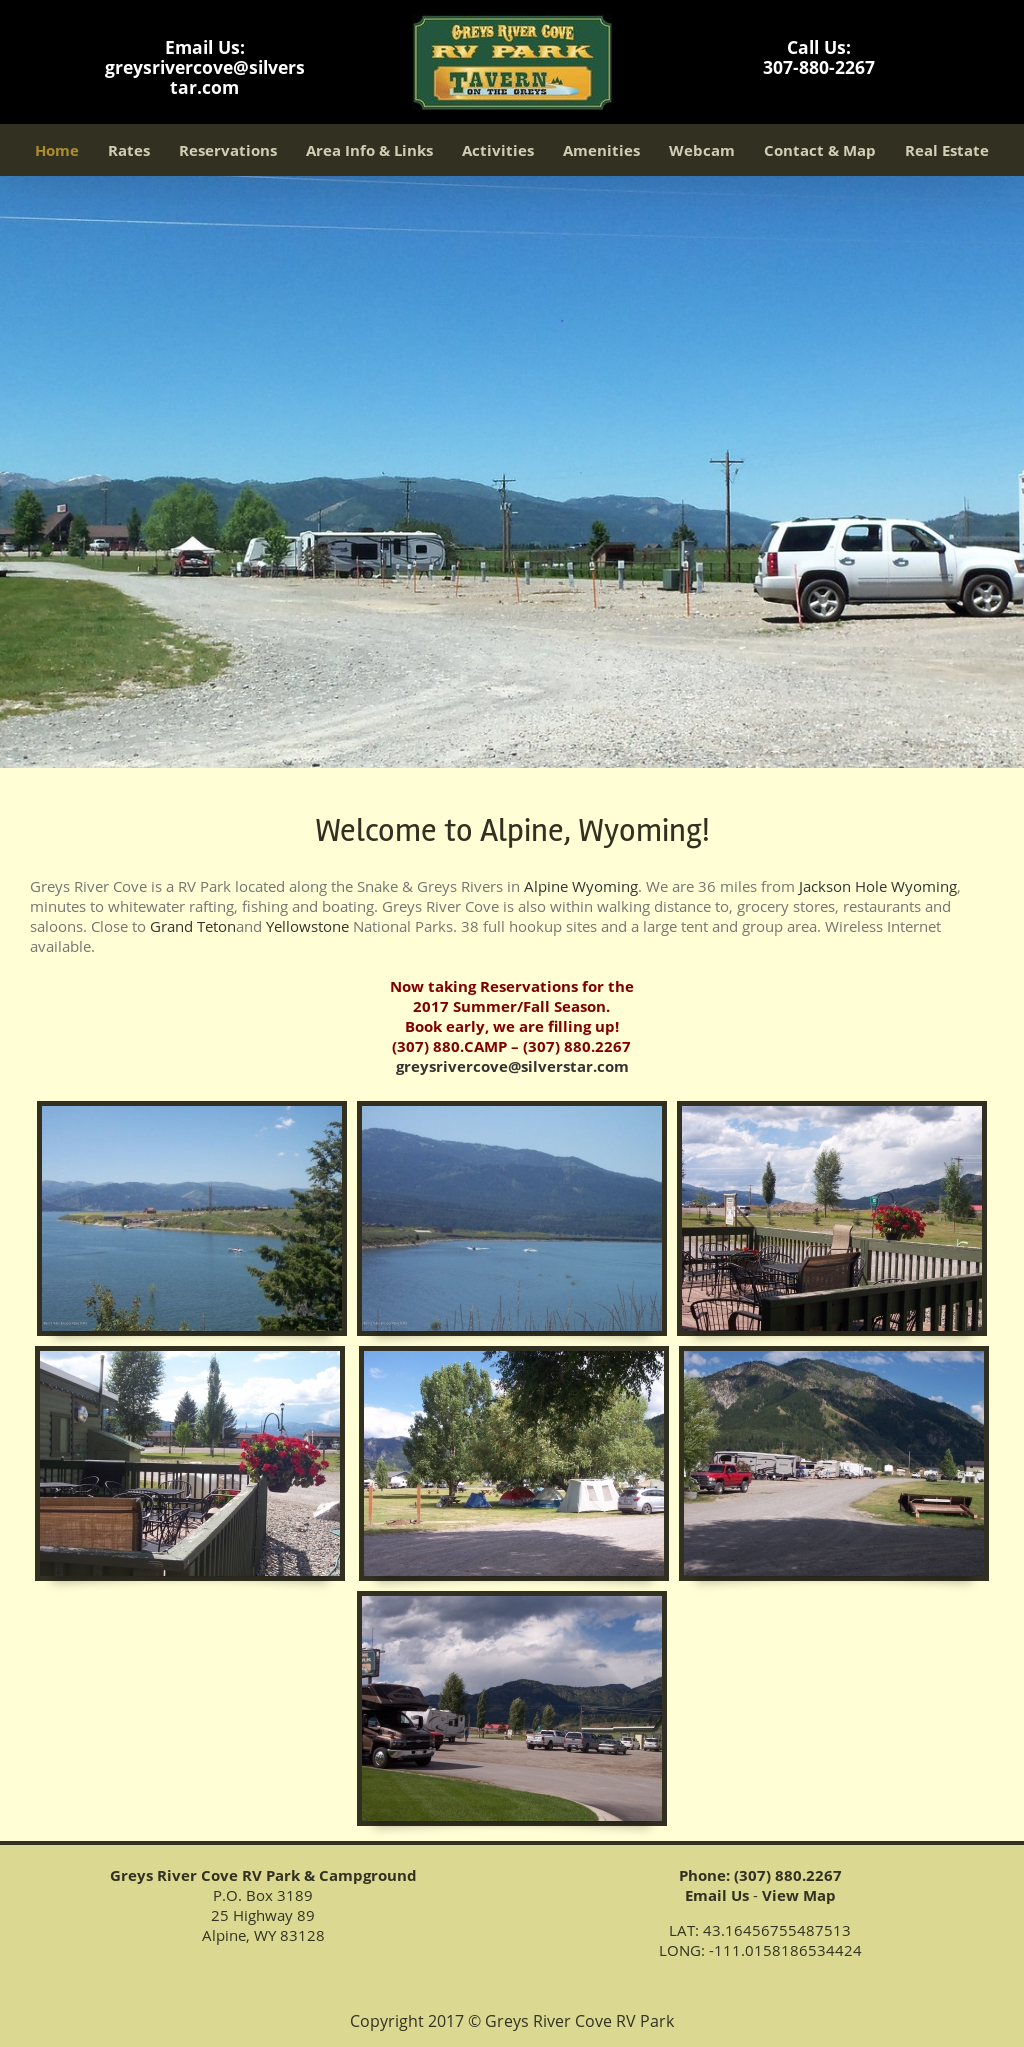 Greys River Cove Rv Park Competitors, Revenue and Employees